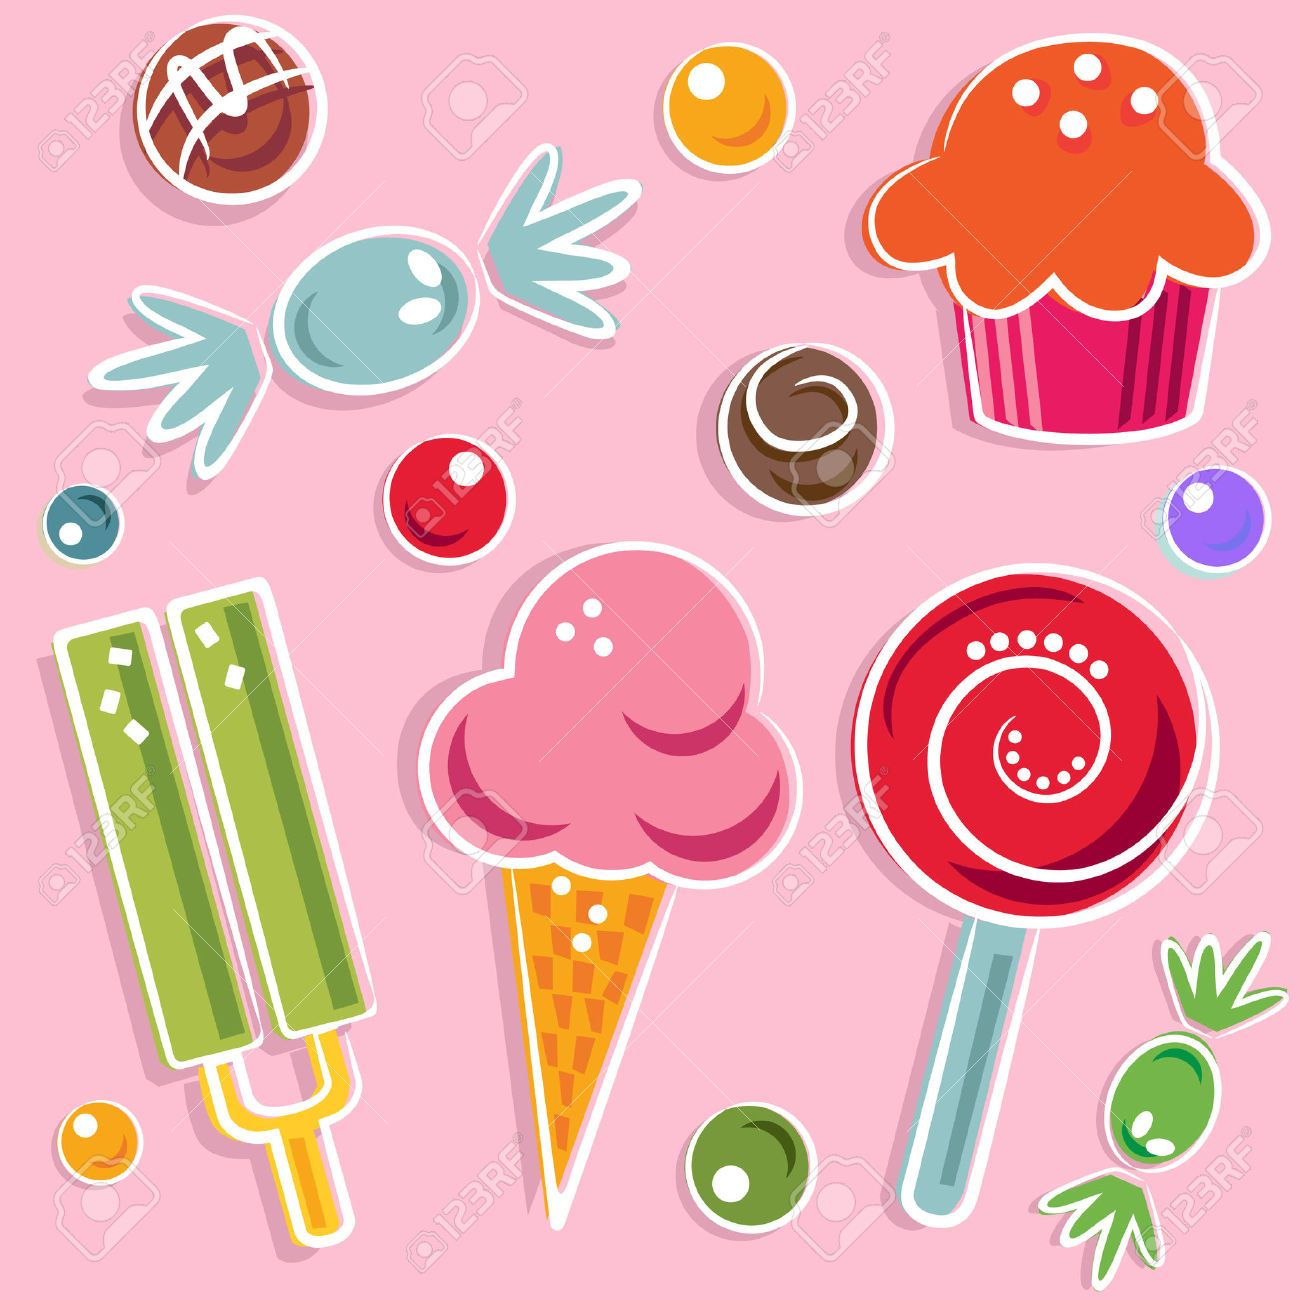 sweets and candies pictures - Google Search | Lang res Autumn ...